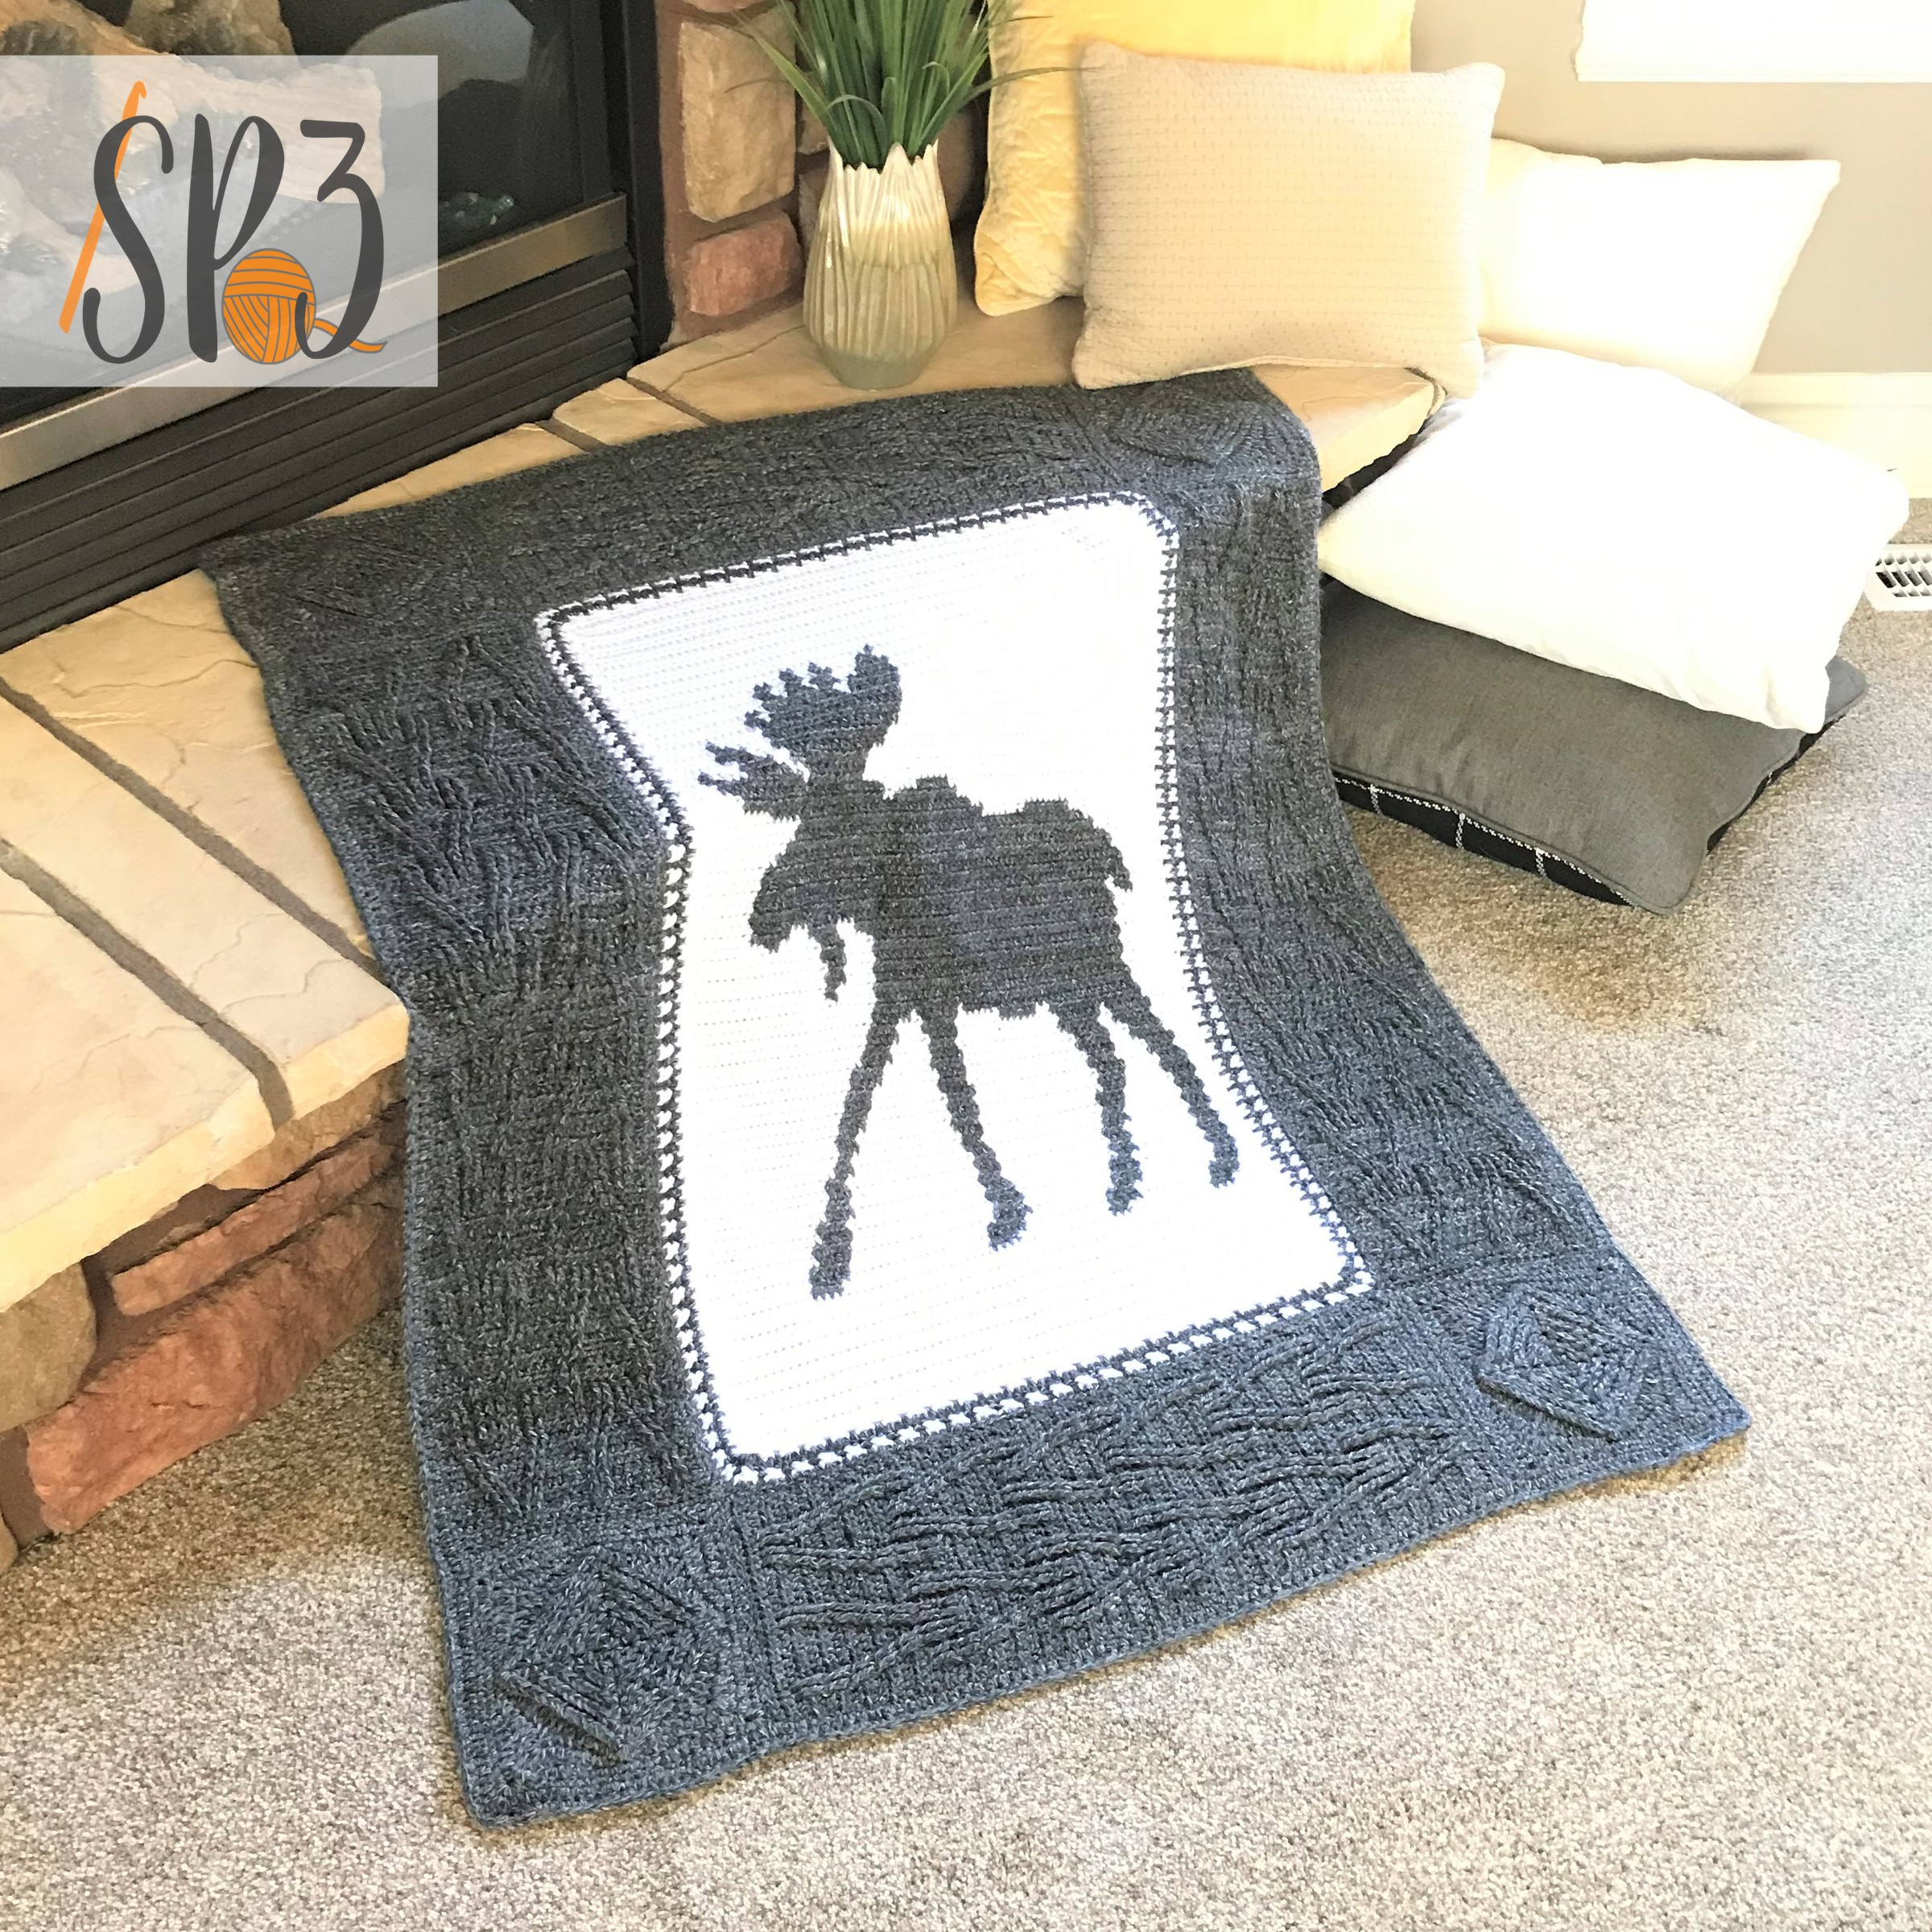 You are currently viewing Wandering Moose Blanket – Crochet Pattern